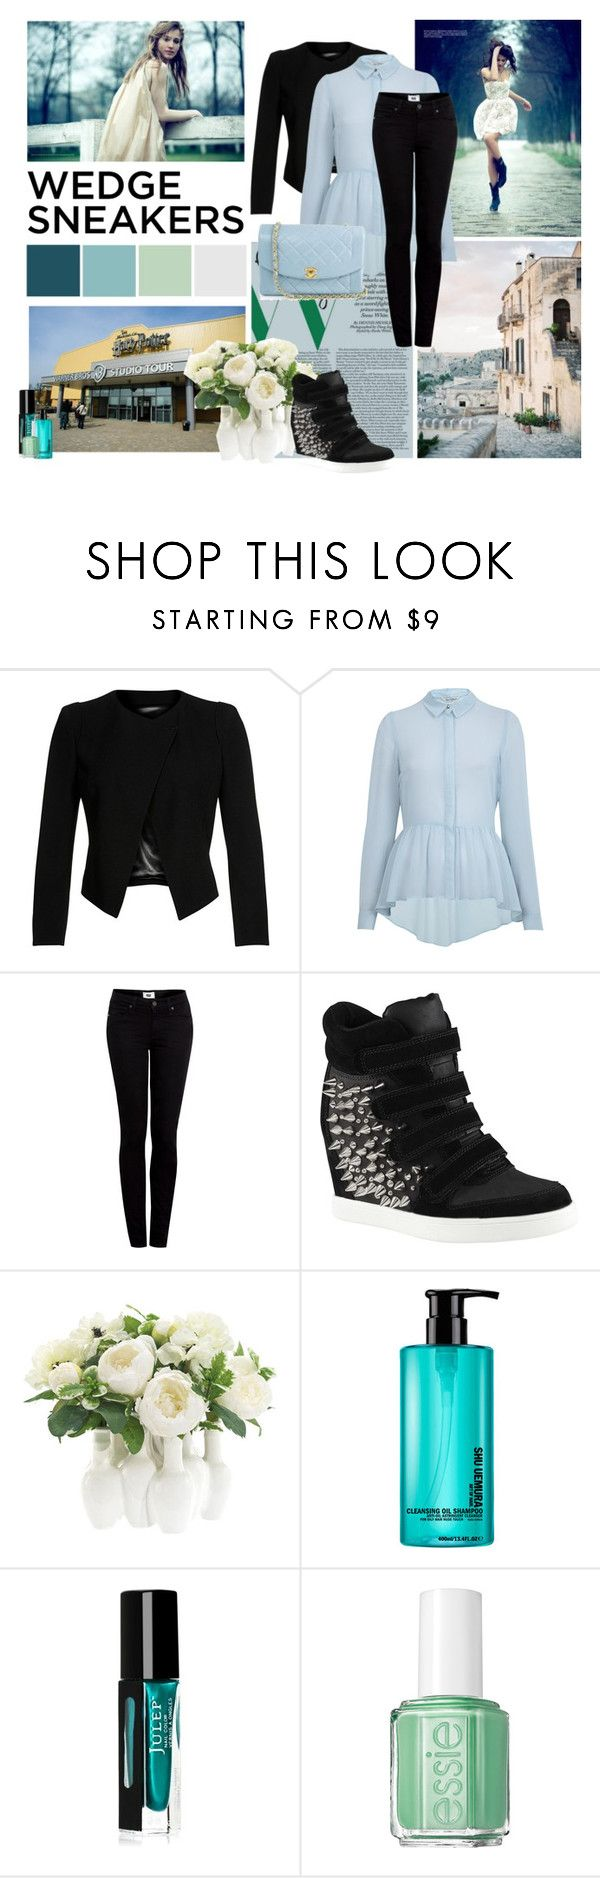 """What Do You Wear With Wedge Sneakers?"" by harry-potter-girl ❤ liked on Polyvore featuring Plein Sud, Miss Selfridge, Paige Denim, ALDO, Chanel, NDI, shu uemura and Essie"